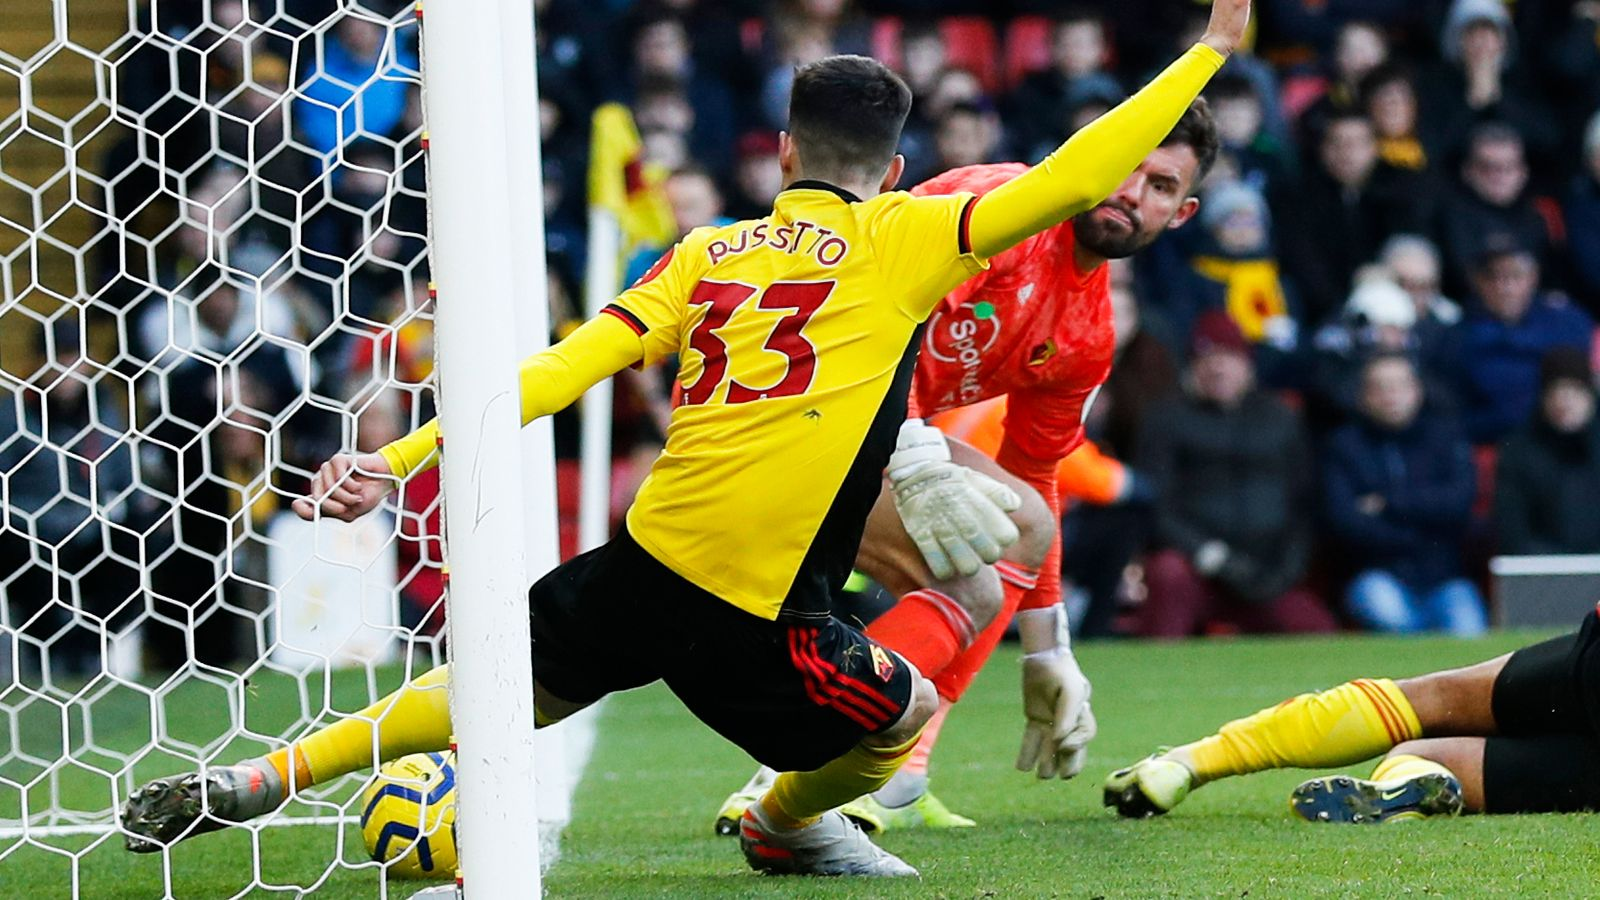 Watford 0-0 Tottenham: Goal-line clearance denies Spurs win by 10.04mm